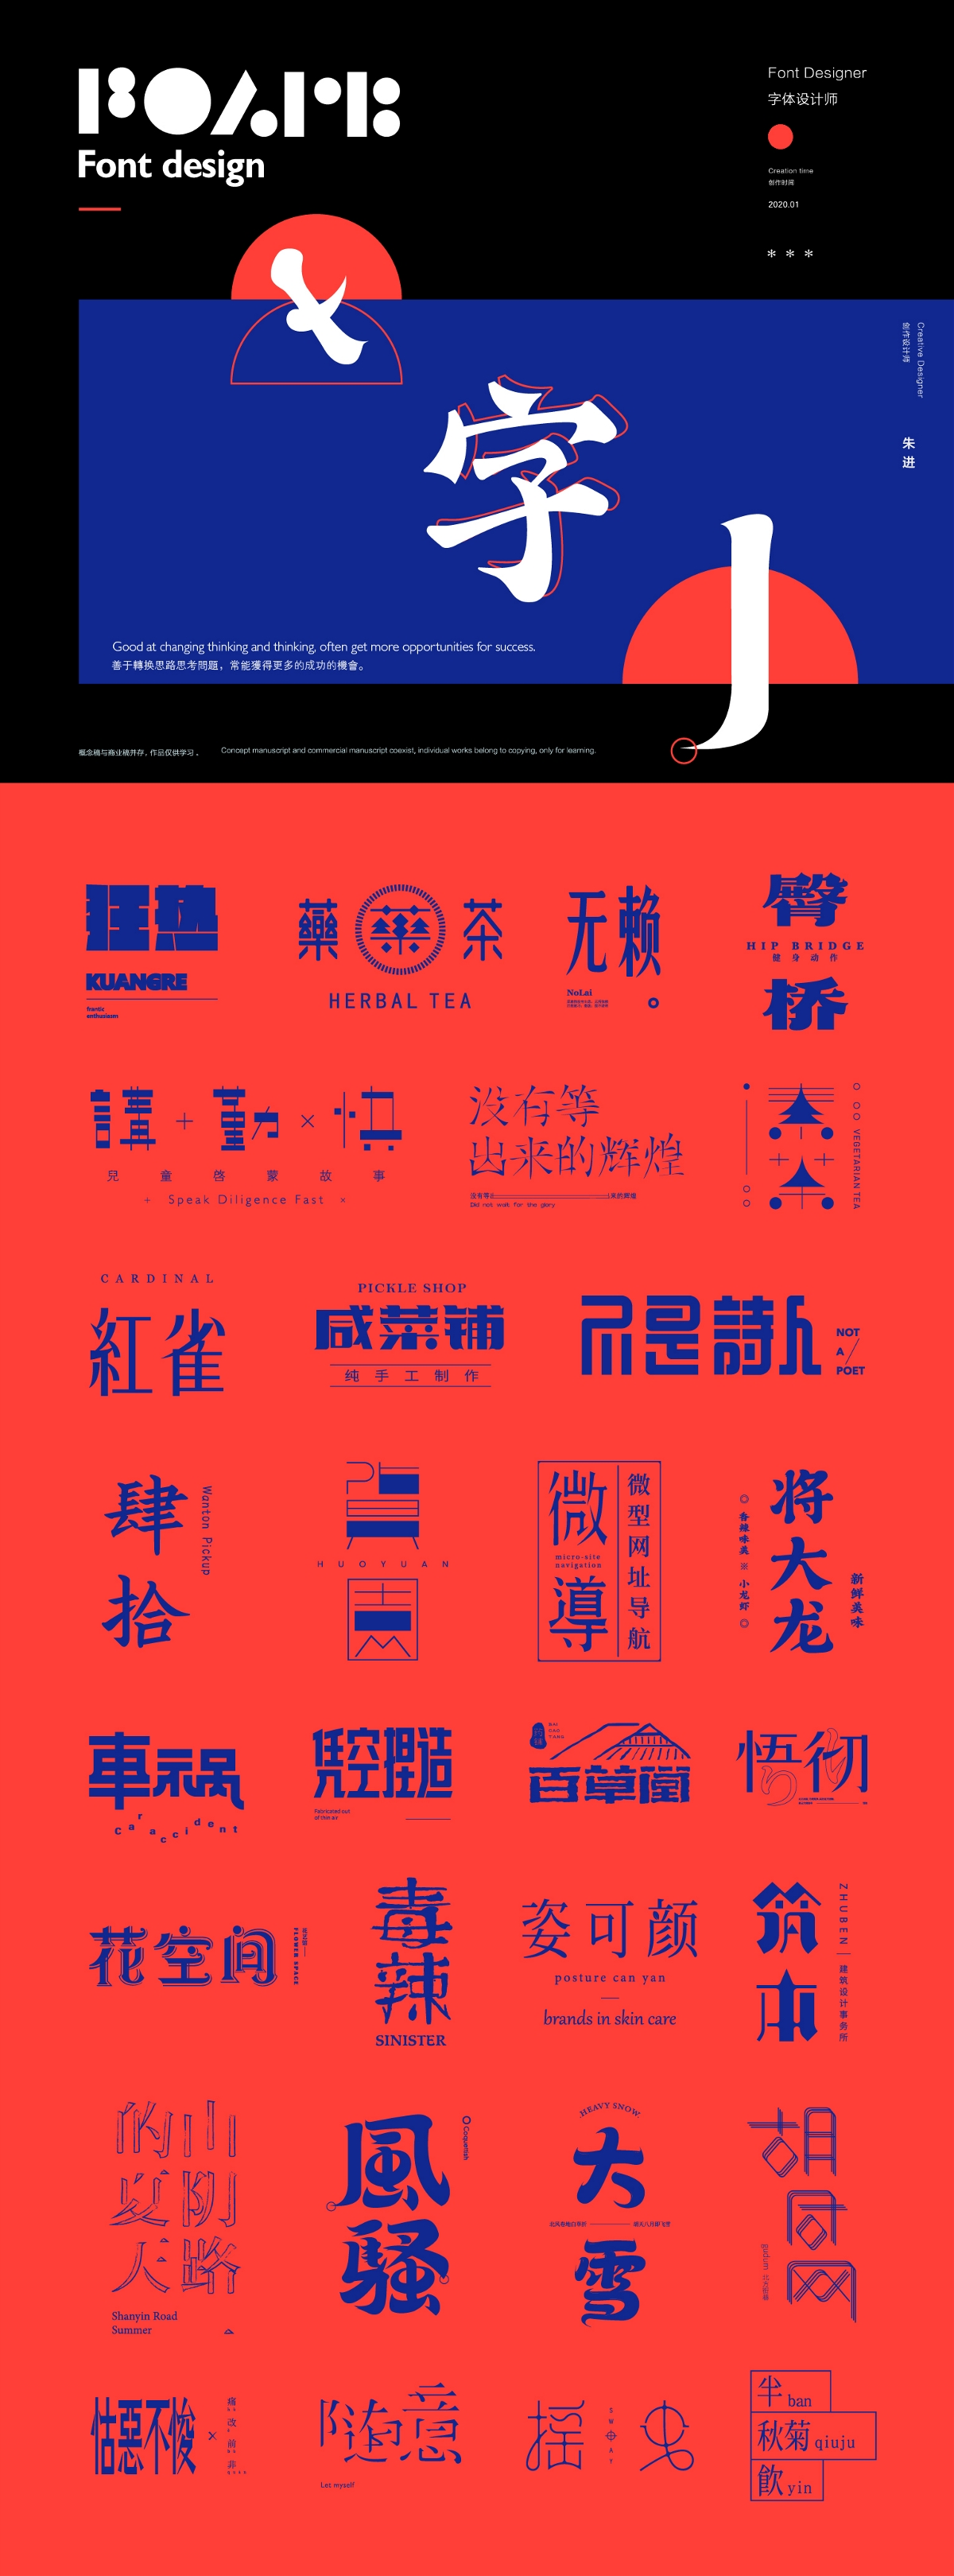 字體設計 Font Design Works (壹)